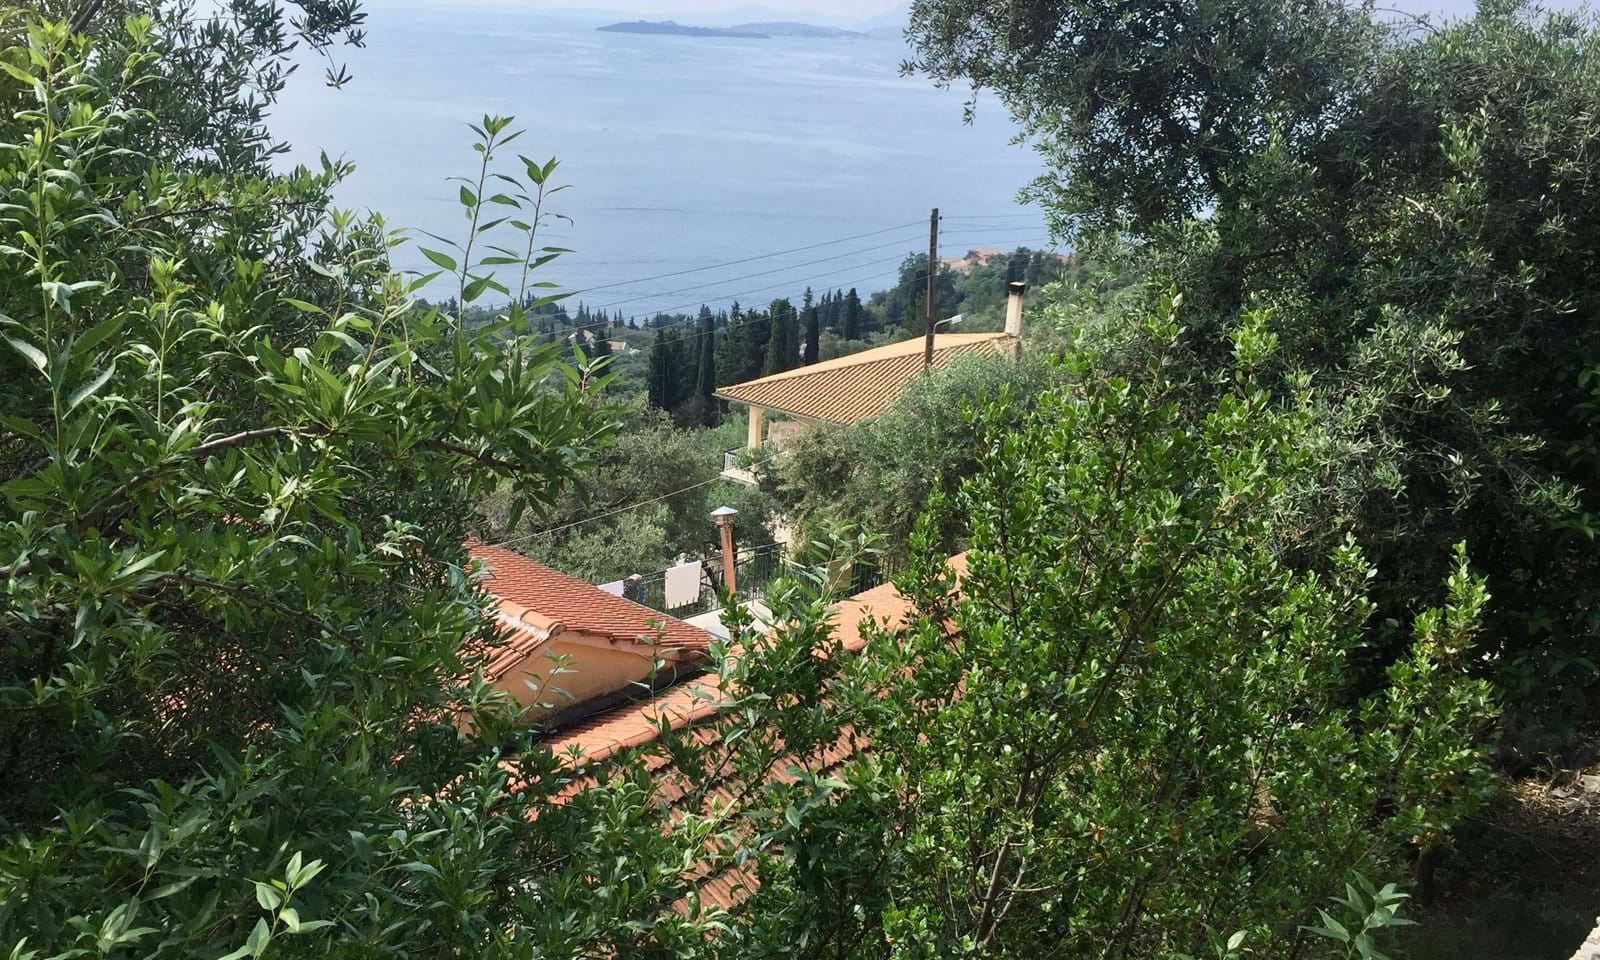 View from the lefthand side of the plot facing the sea, turning right overlooking Corfu Town